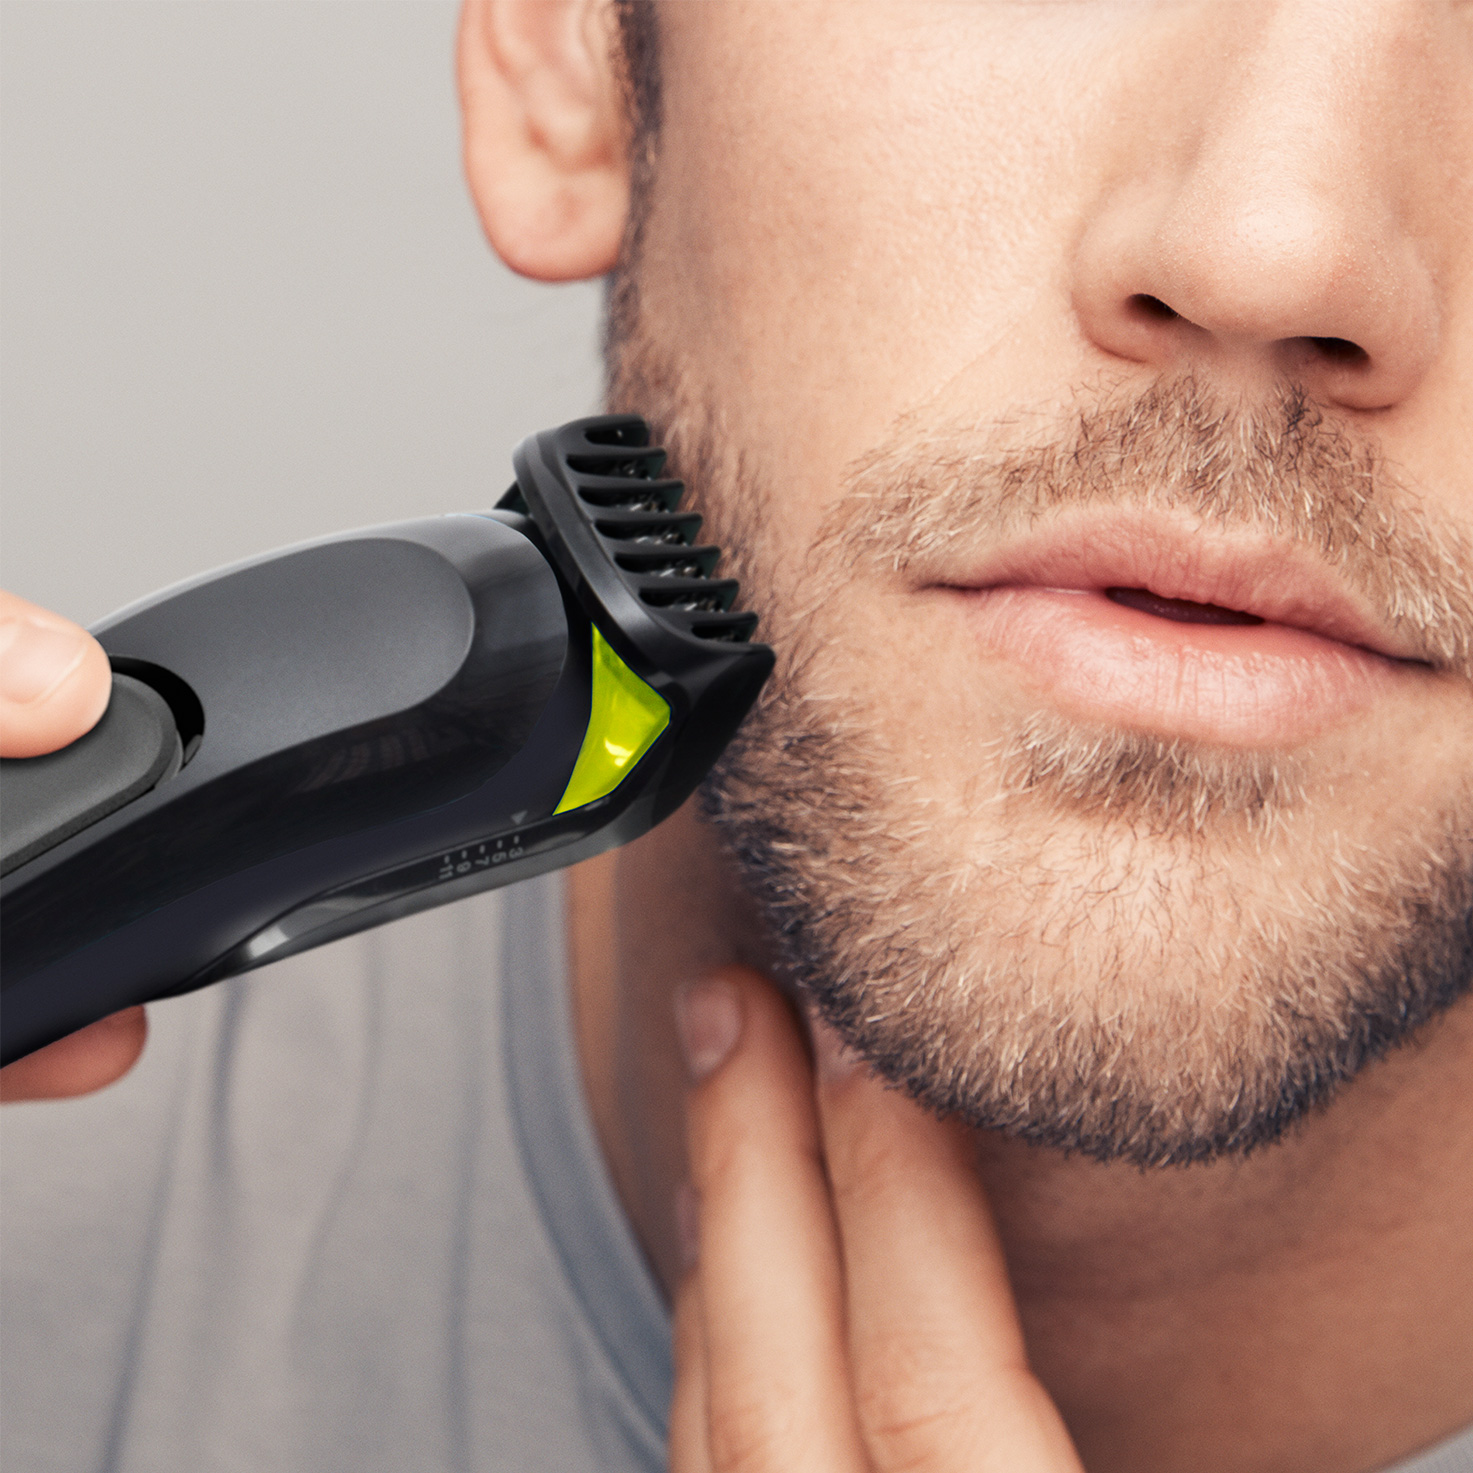 Braun All-in-one trimmer MGK3021 - In use